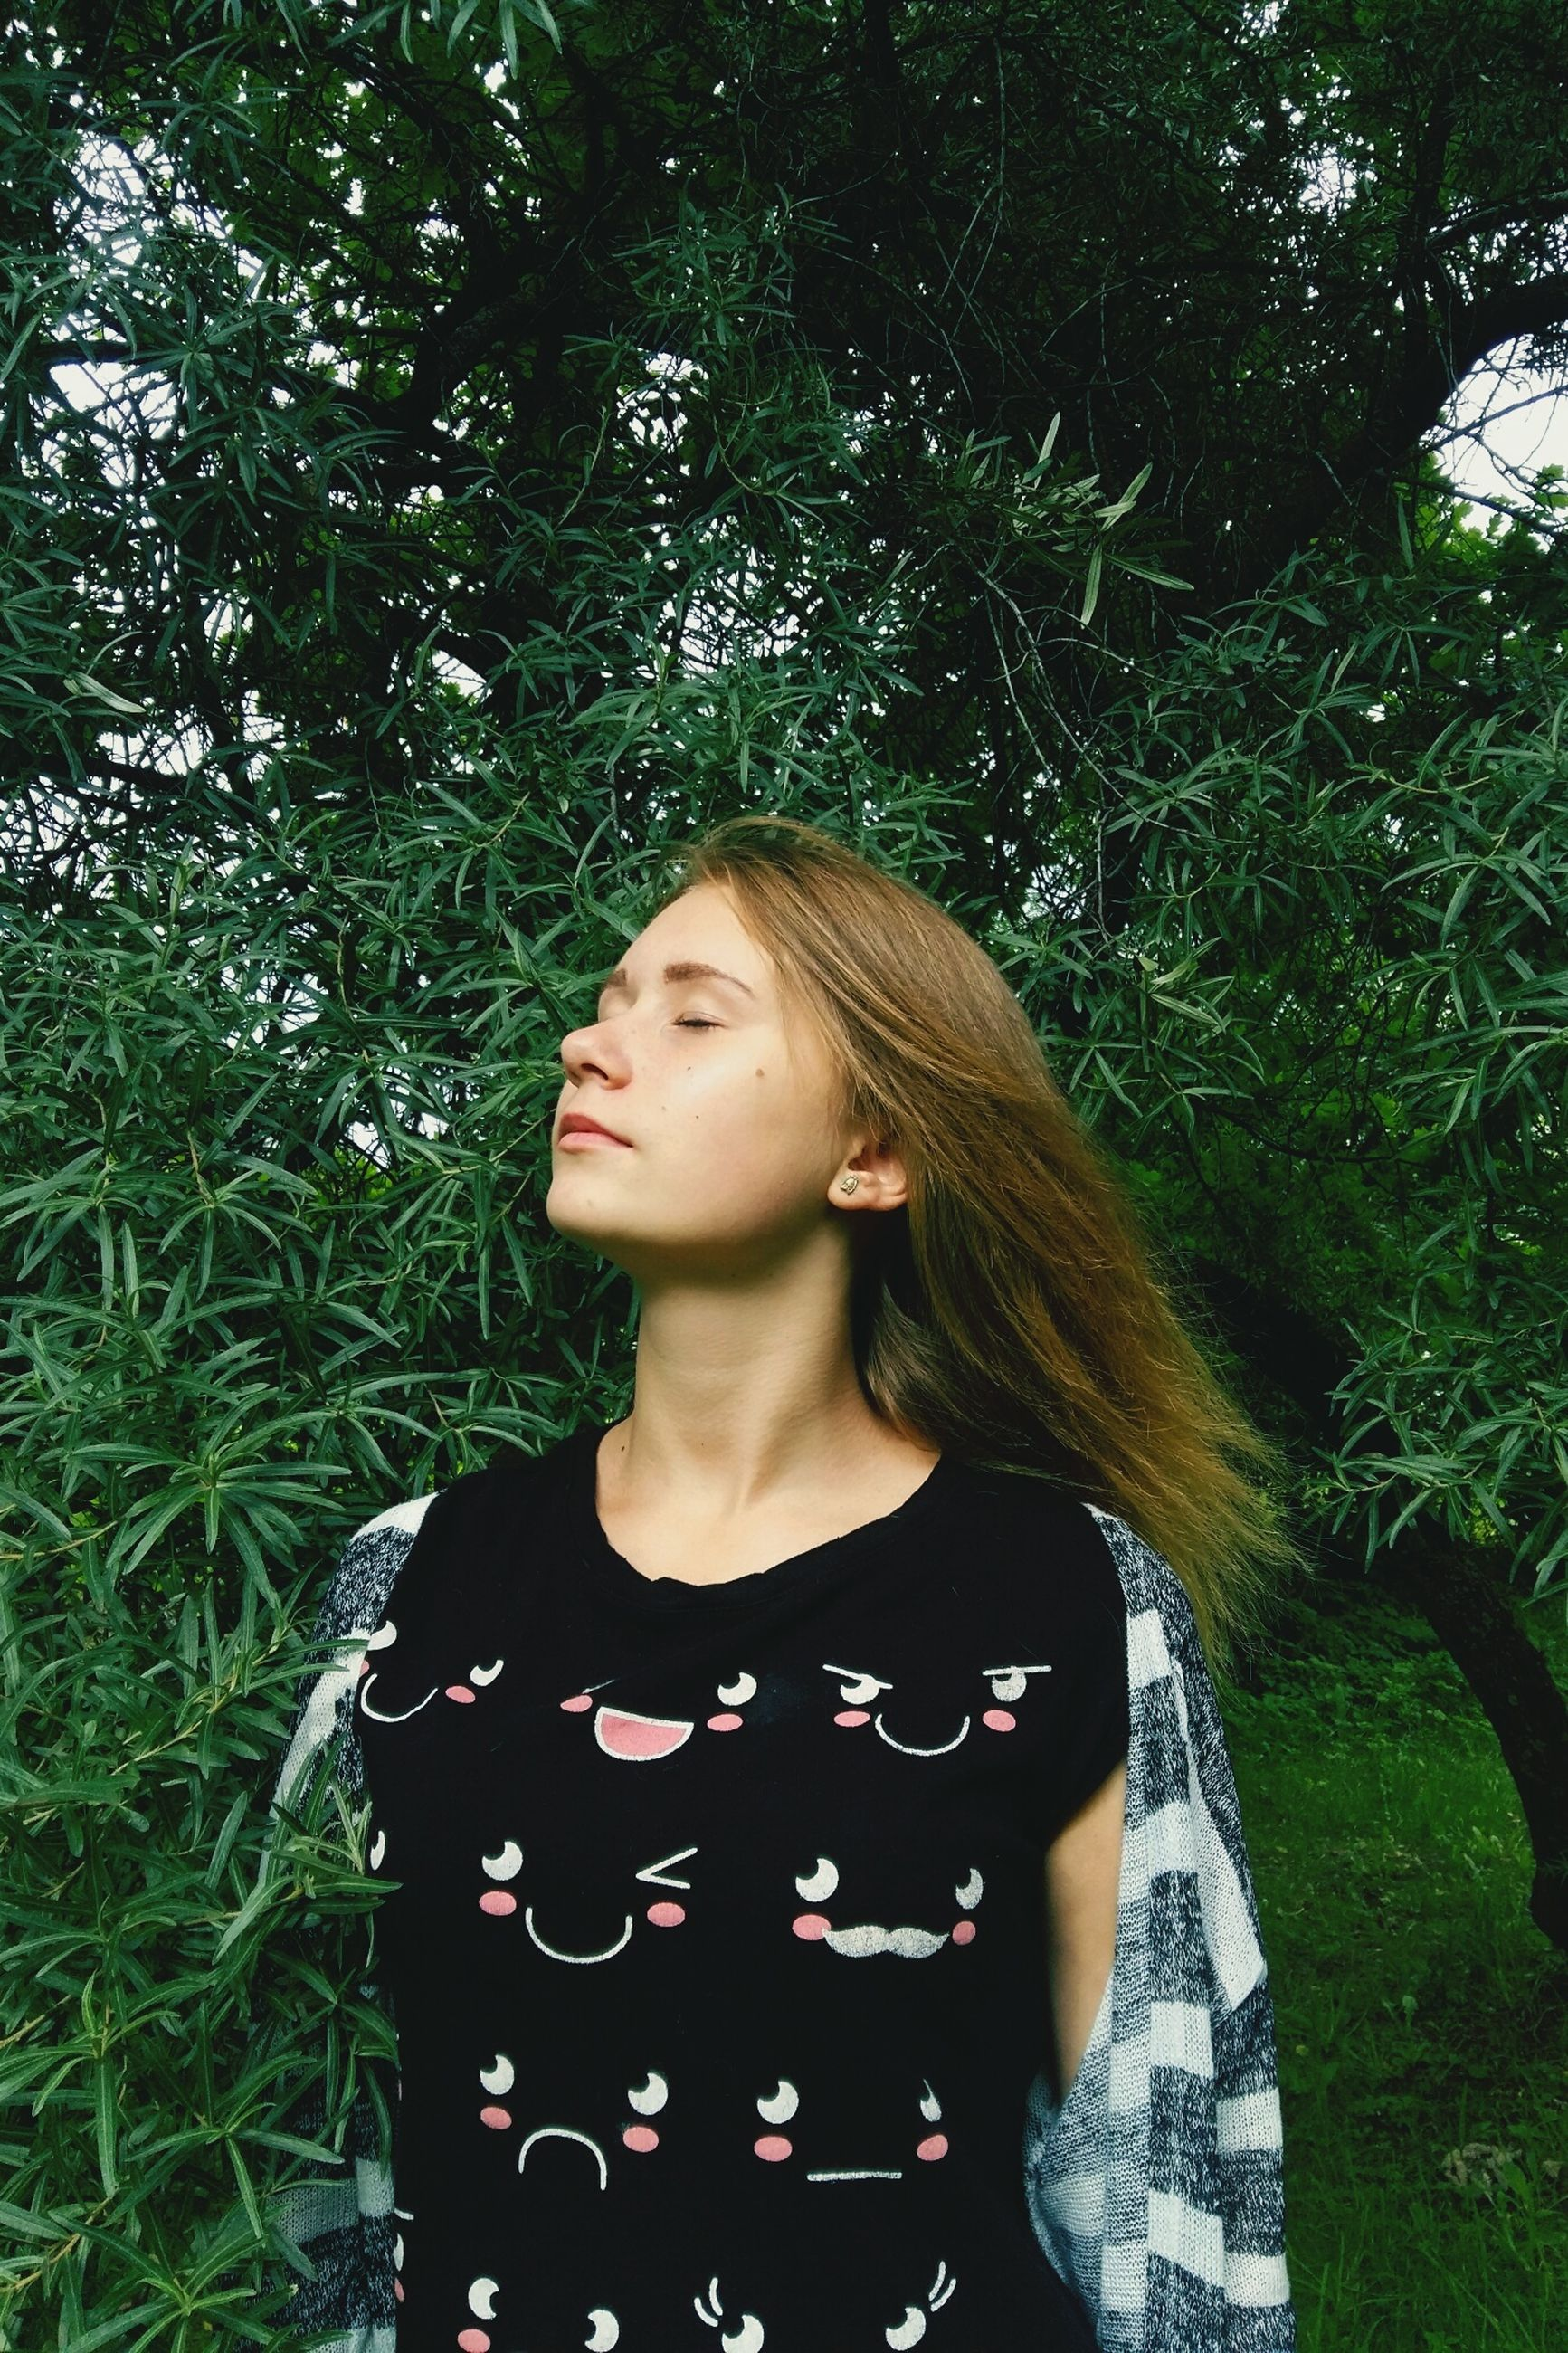 portrait, young women, person, front view, lifestyles, casual clothing, long hair, leisure activity, tree, grass, beauty, confidence, outdoors, day, plant, growth, nature